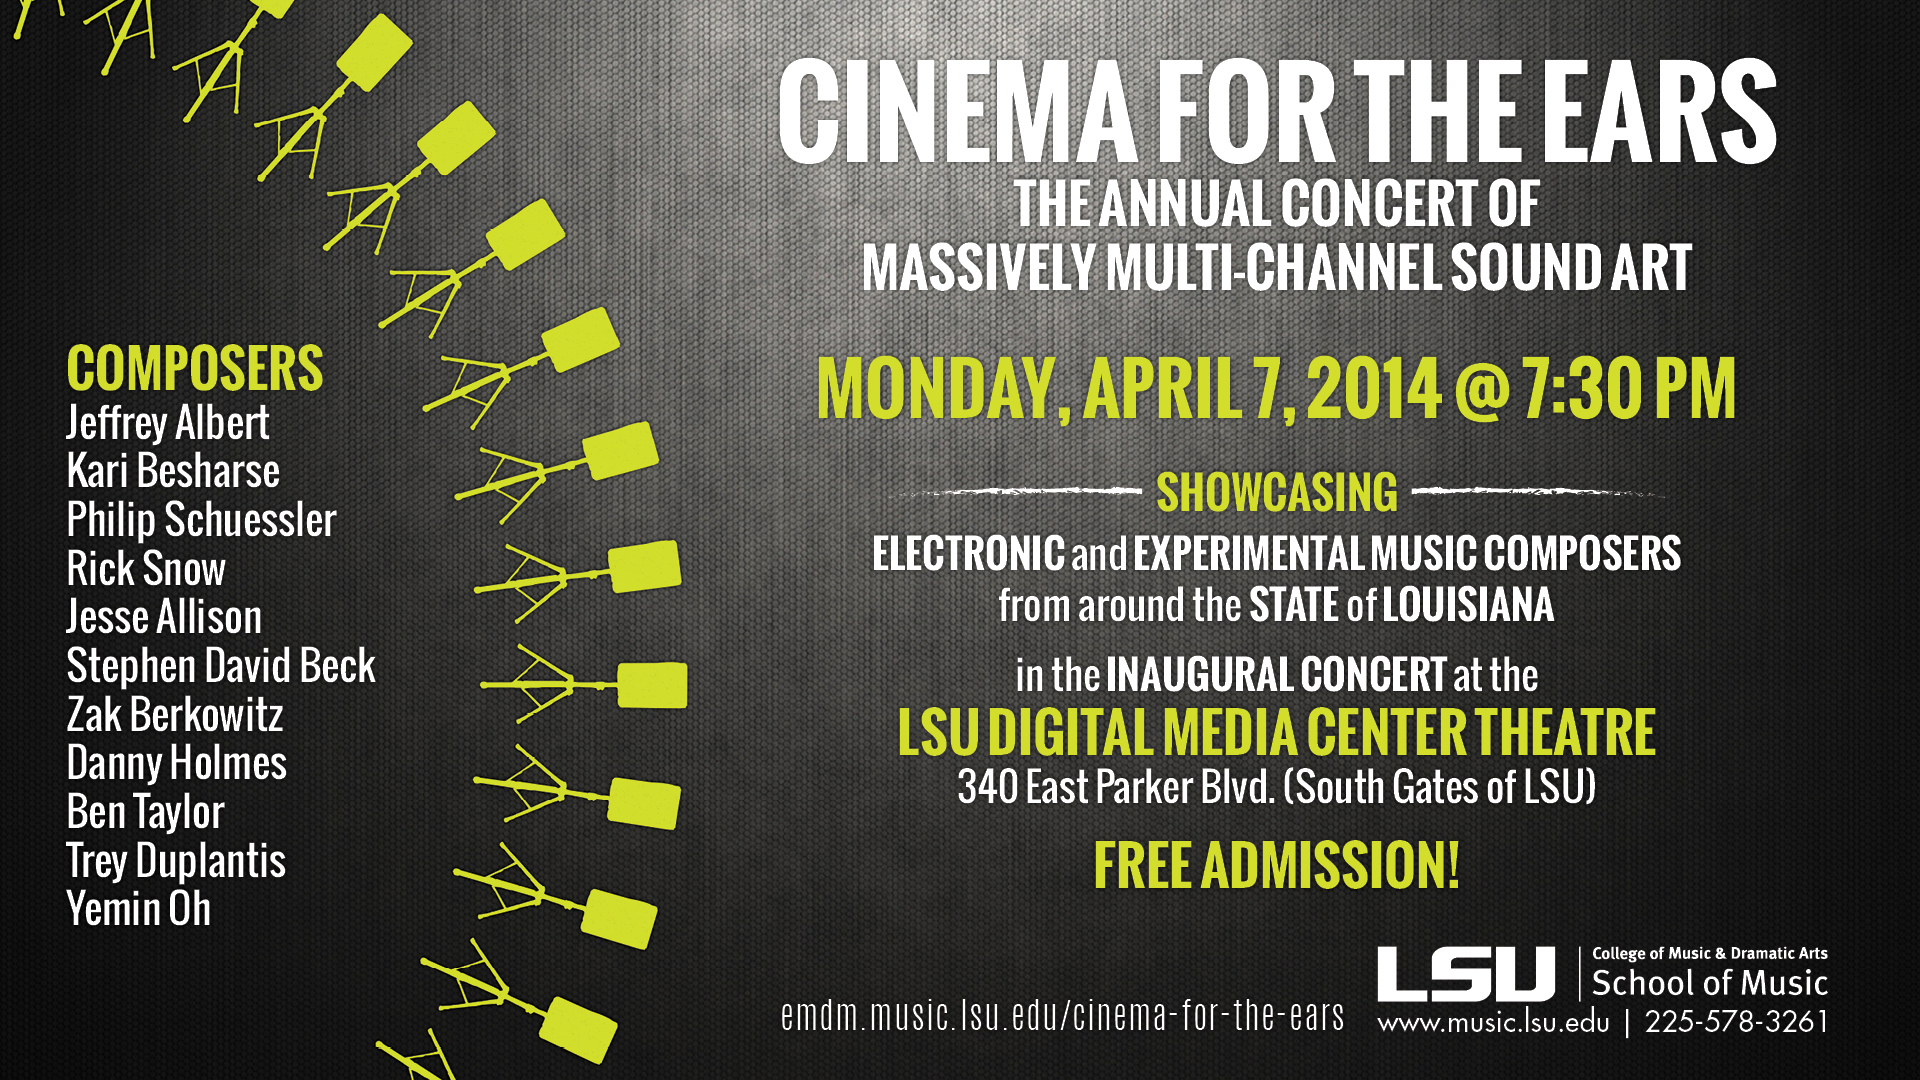 Annual ambisonic 72-channel concert is April 7 in new LDMC Theater